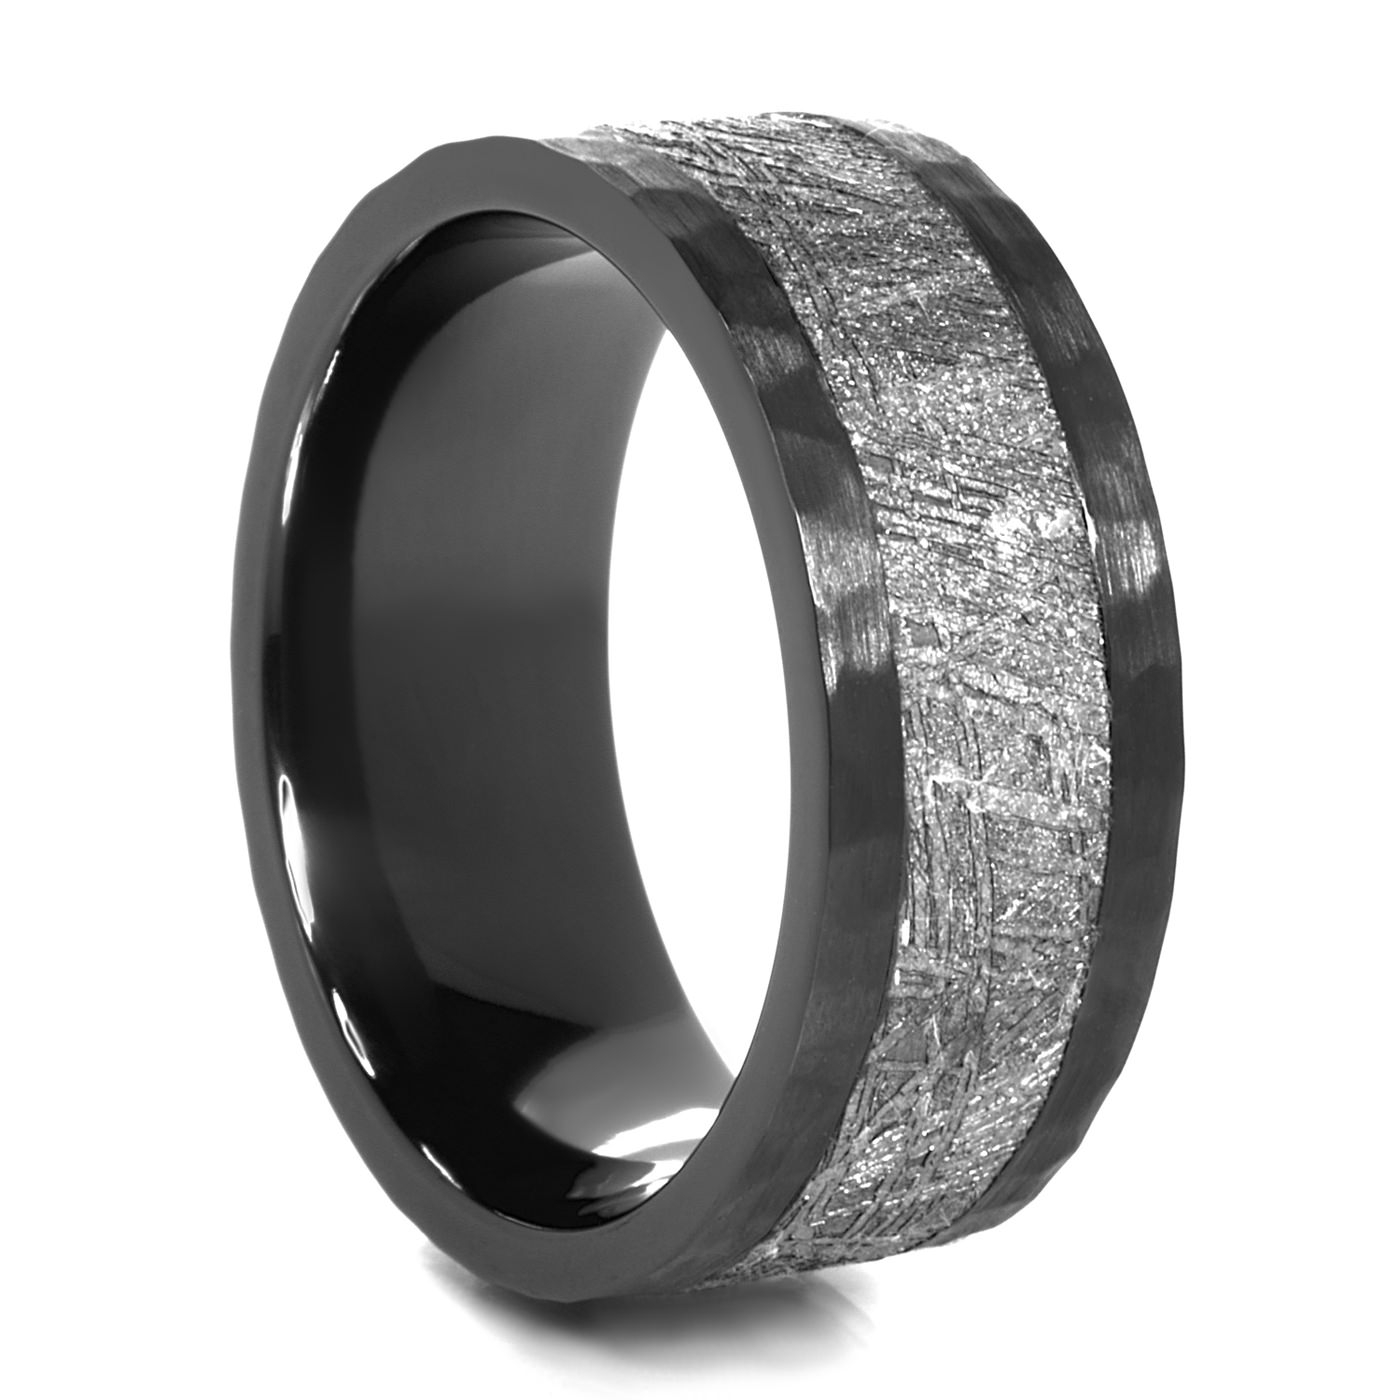 Lashbrook Astro Black Zirconium & Meteorite Ring – 9Mm Intended For Black Zirconium Wedding Bands (View 8 of 15)